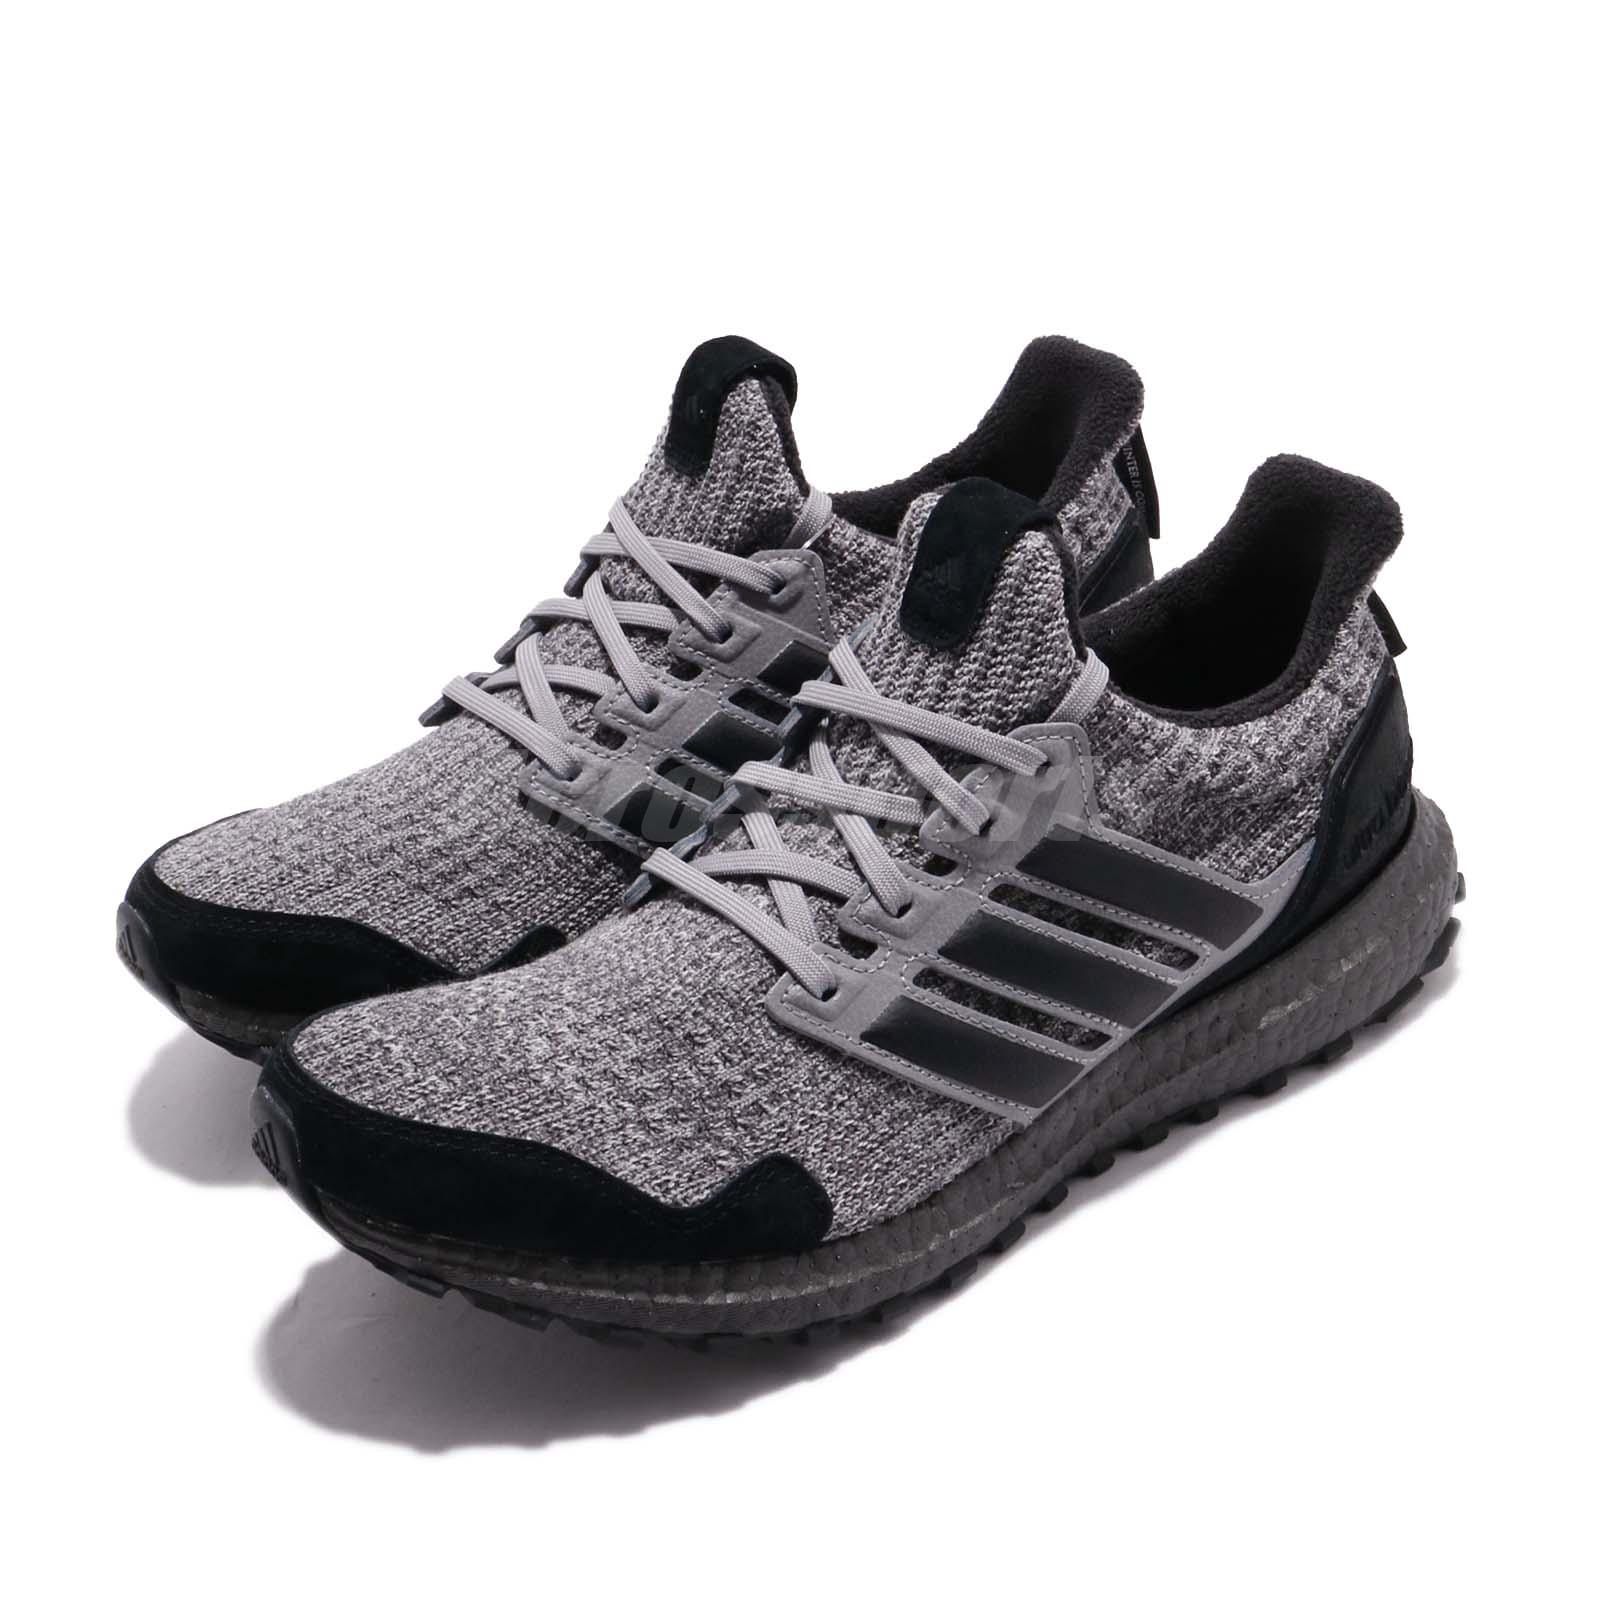 f31fc040303f9 Details about adidas UltraBOOST Game Of Thrones House Stark Black Grey Men  Running Shoe EE3706